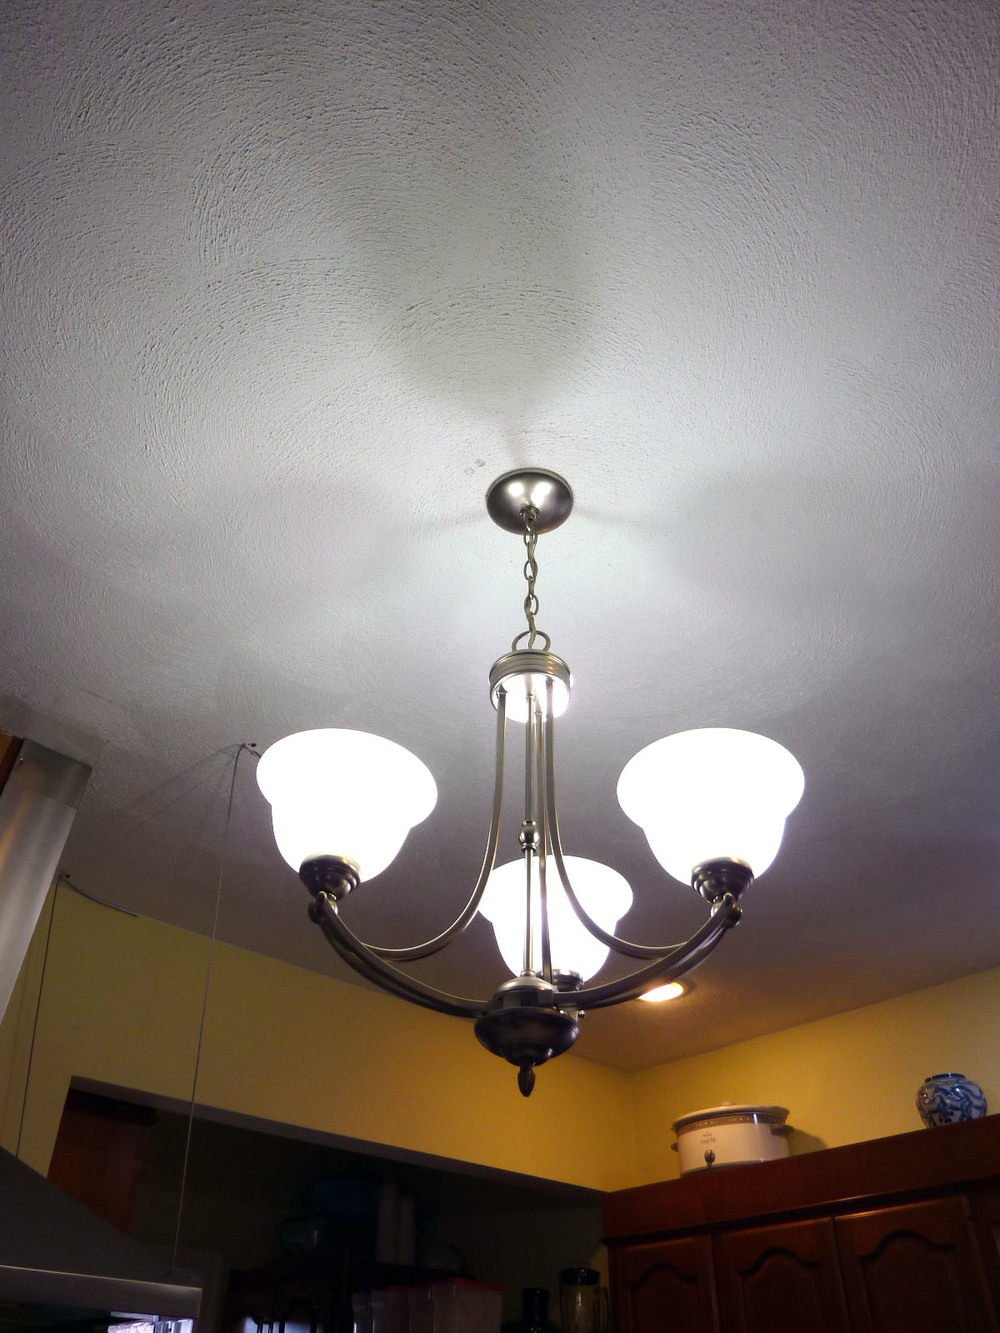 This light fixture also came from the Reuse Center.